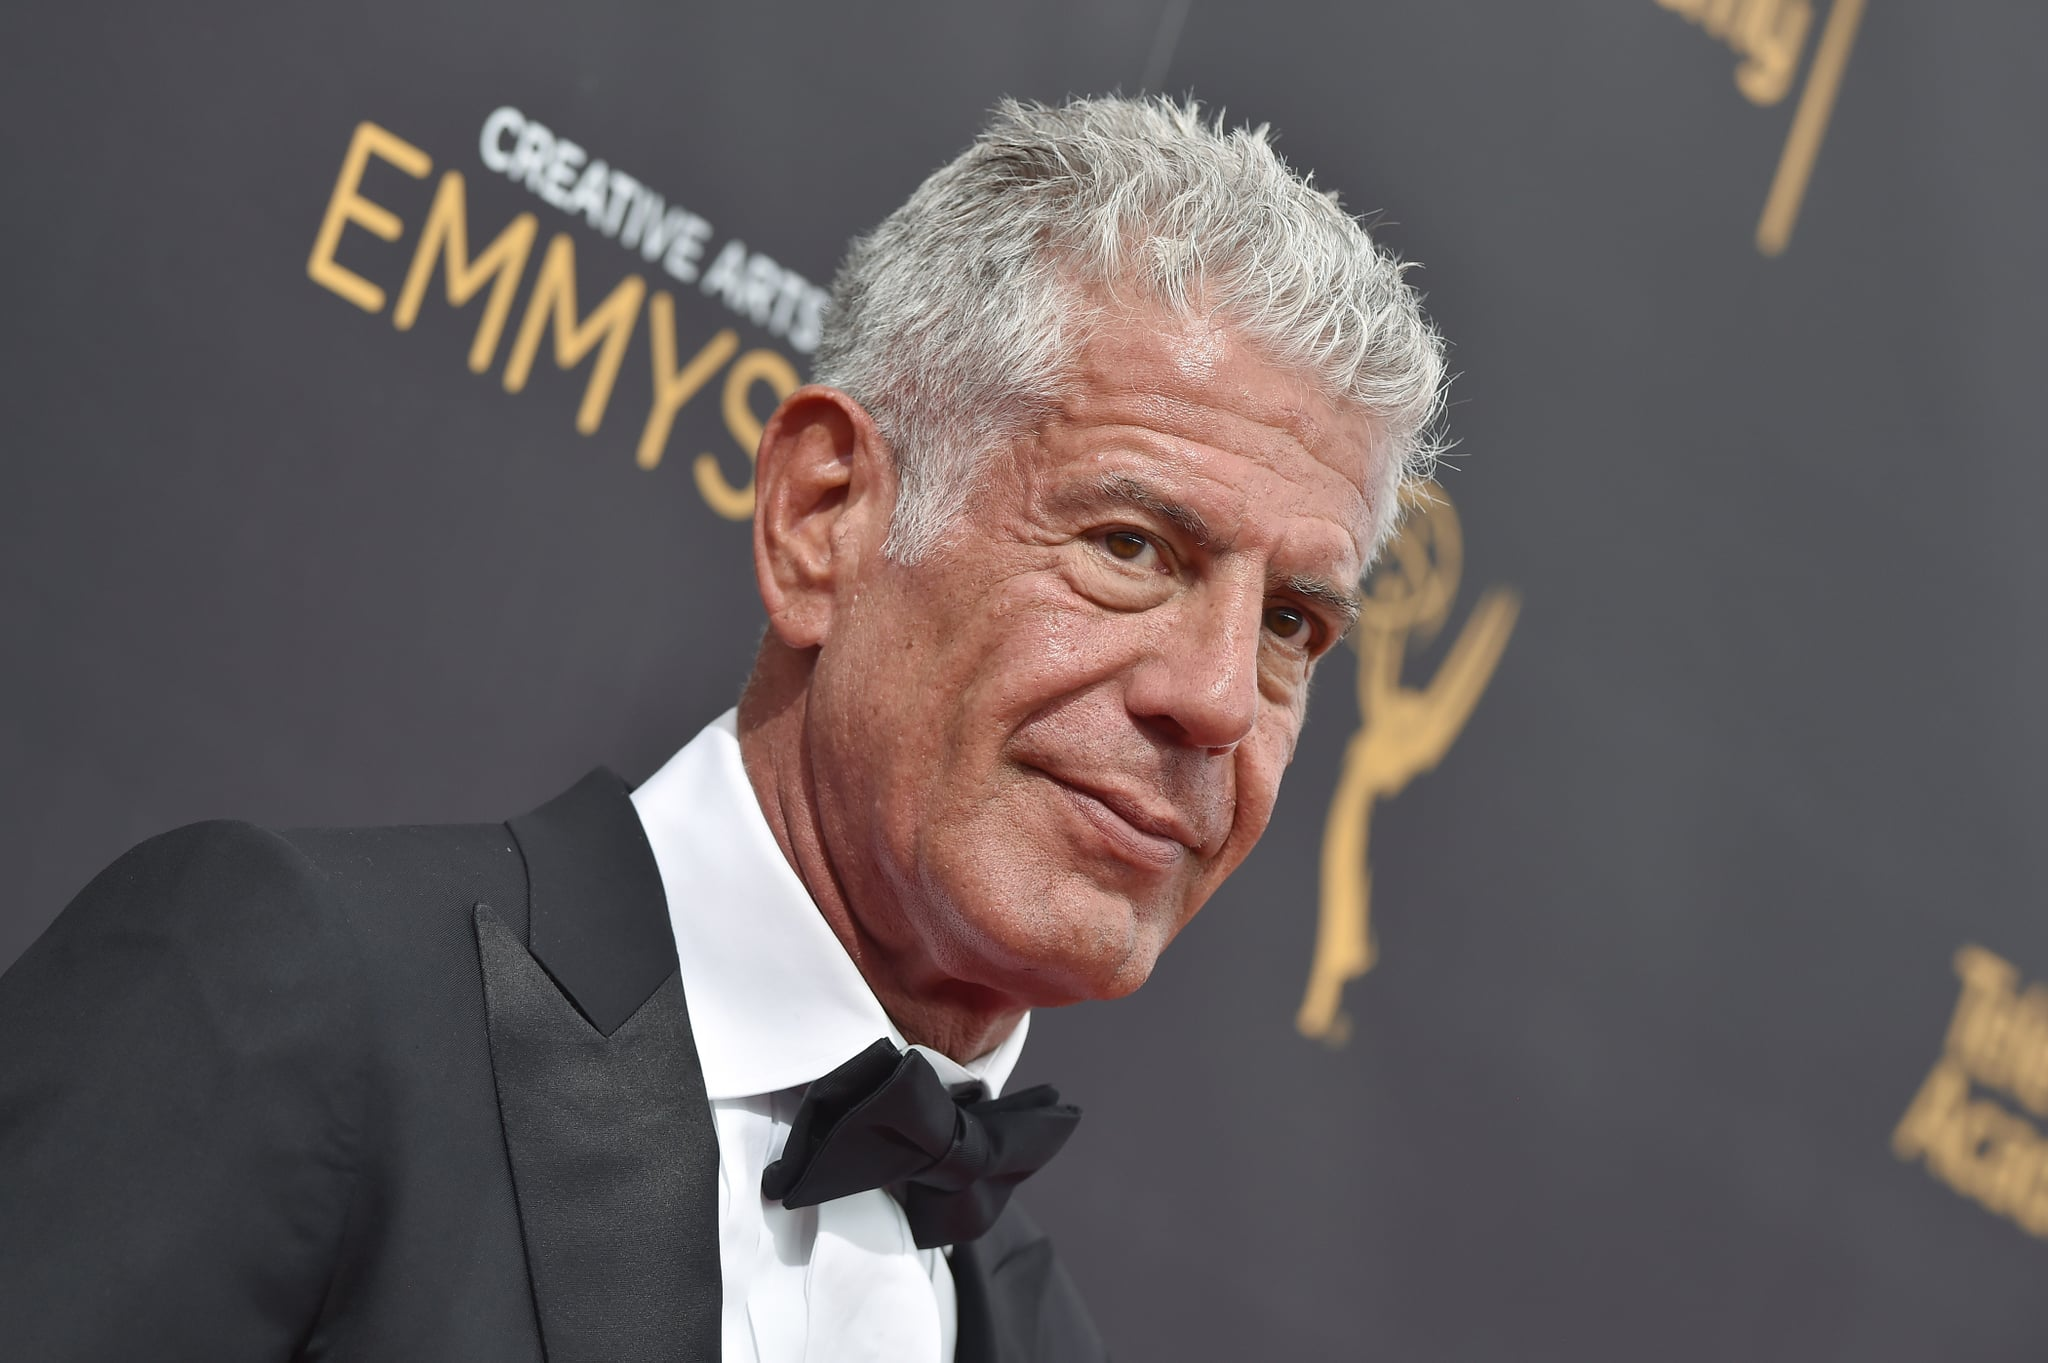 LOS ANGELES, CA - SEPTEMBER 11:  Chef/TV personality Anthony Bourdain arrives at the 2016 Creative Arts Emmy Awards at Microsoft Theater on September 11, 2016 in Los Angeles, California.  (Photo by Axelle/Bauer-Griffin/FilmMagic)